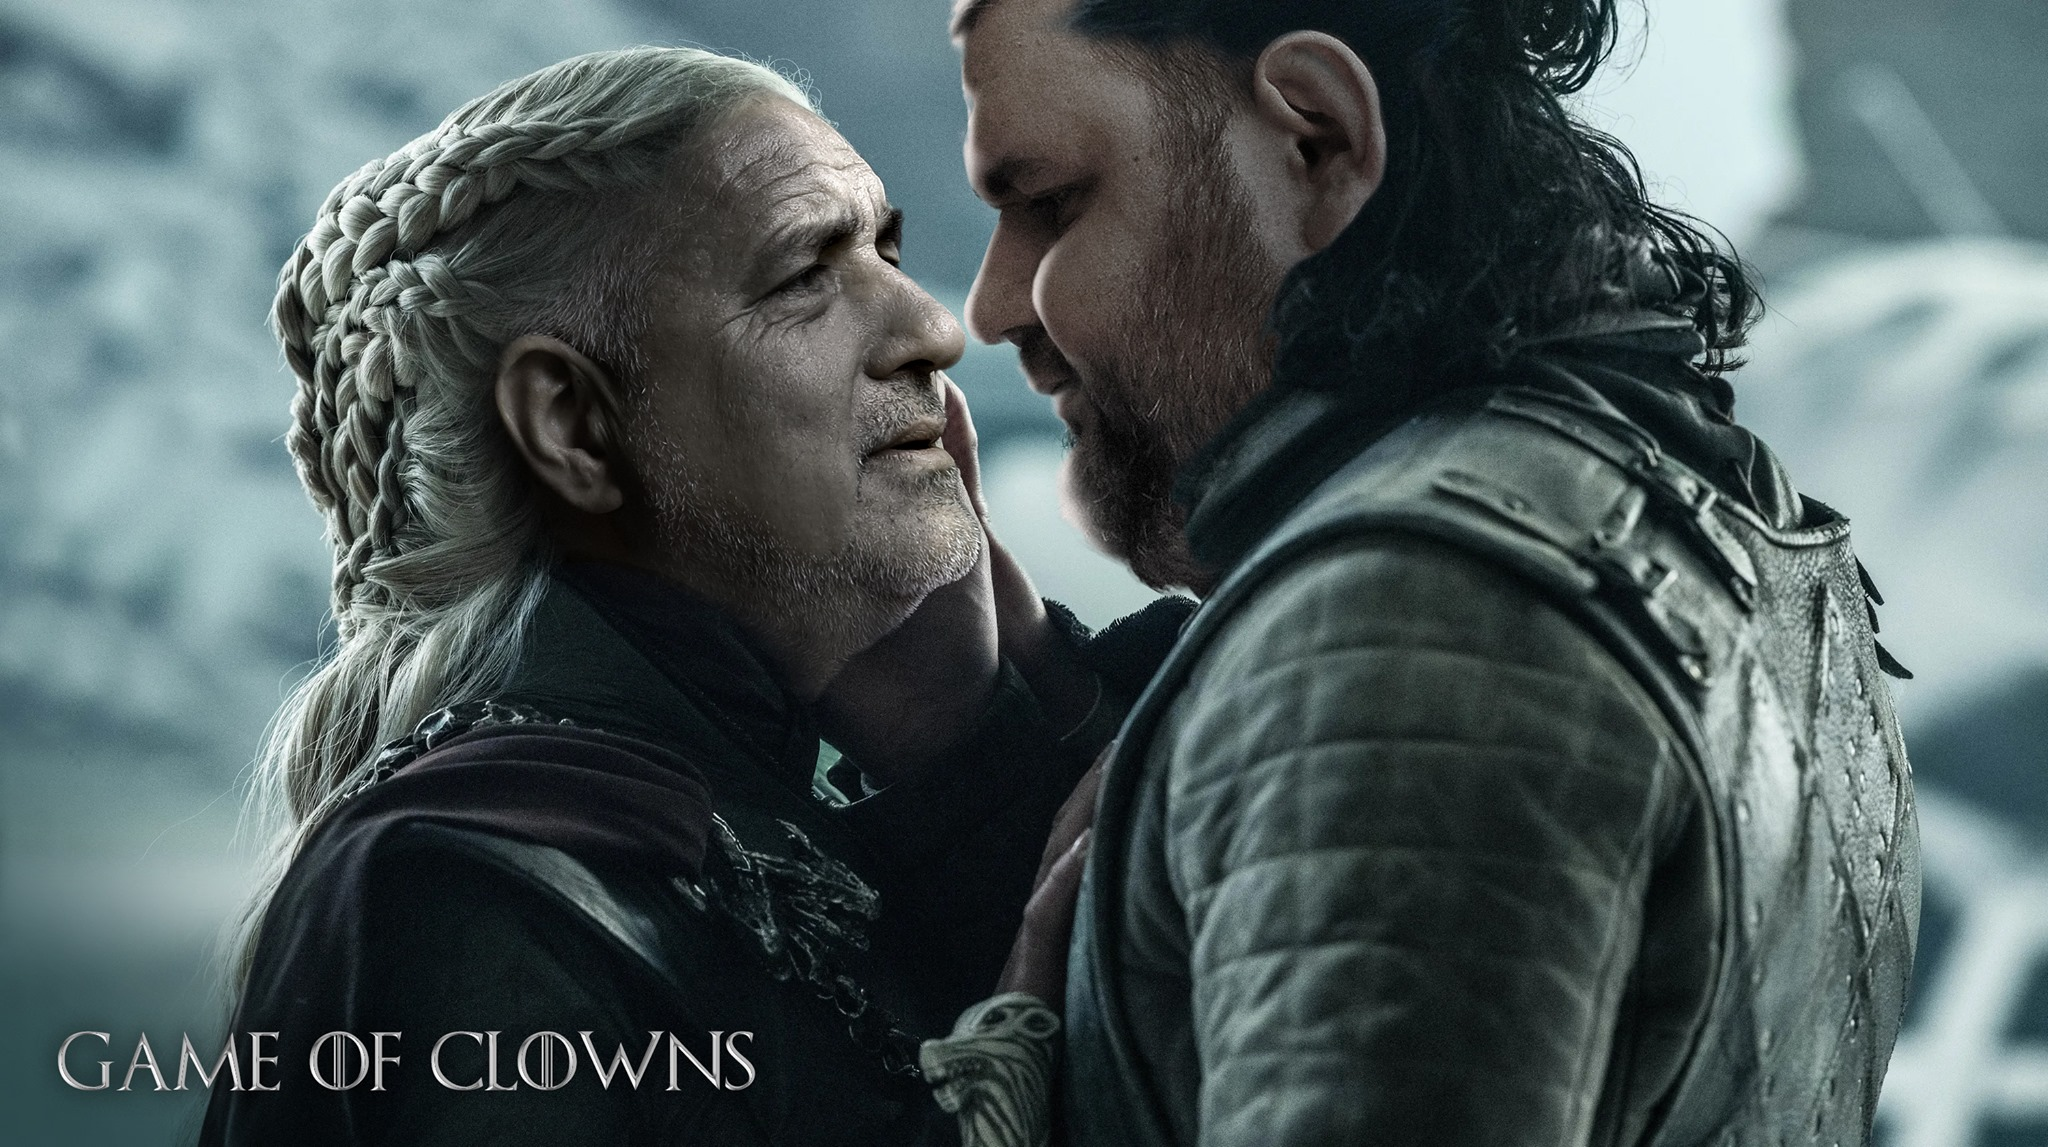 Game of clowns